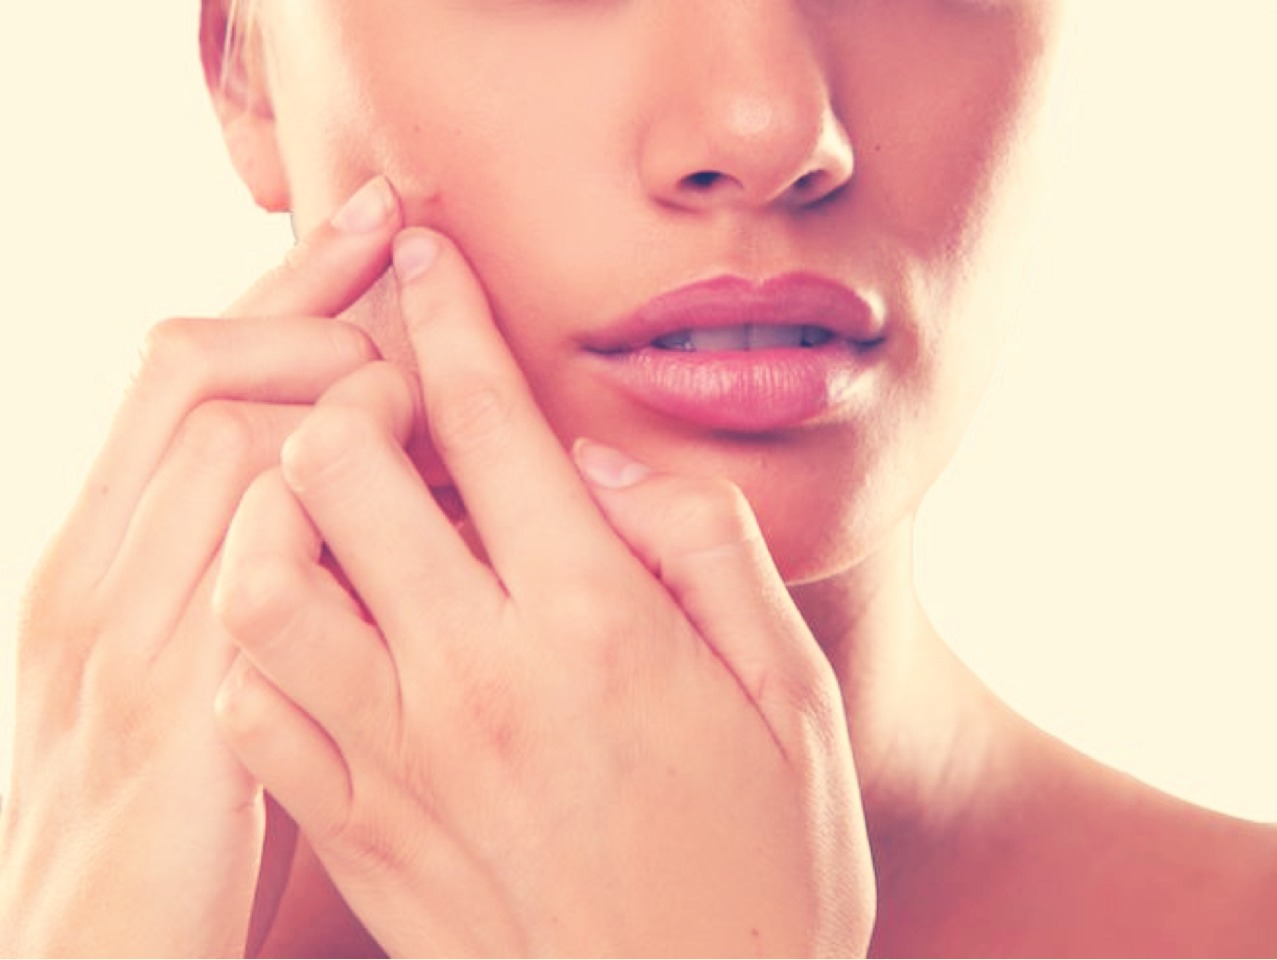 Don't pick!!! I know it's tough, but picking will only make the pimple take longer to heal & therefore longer to go away!